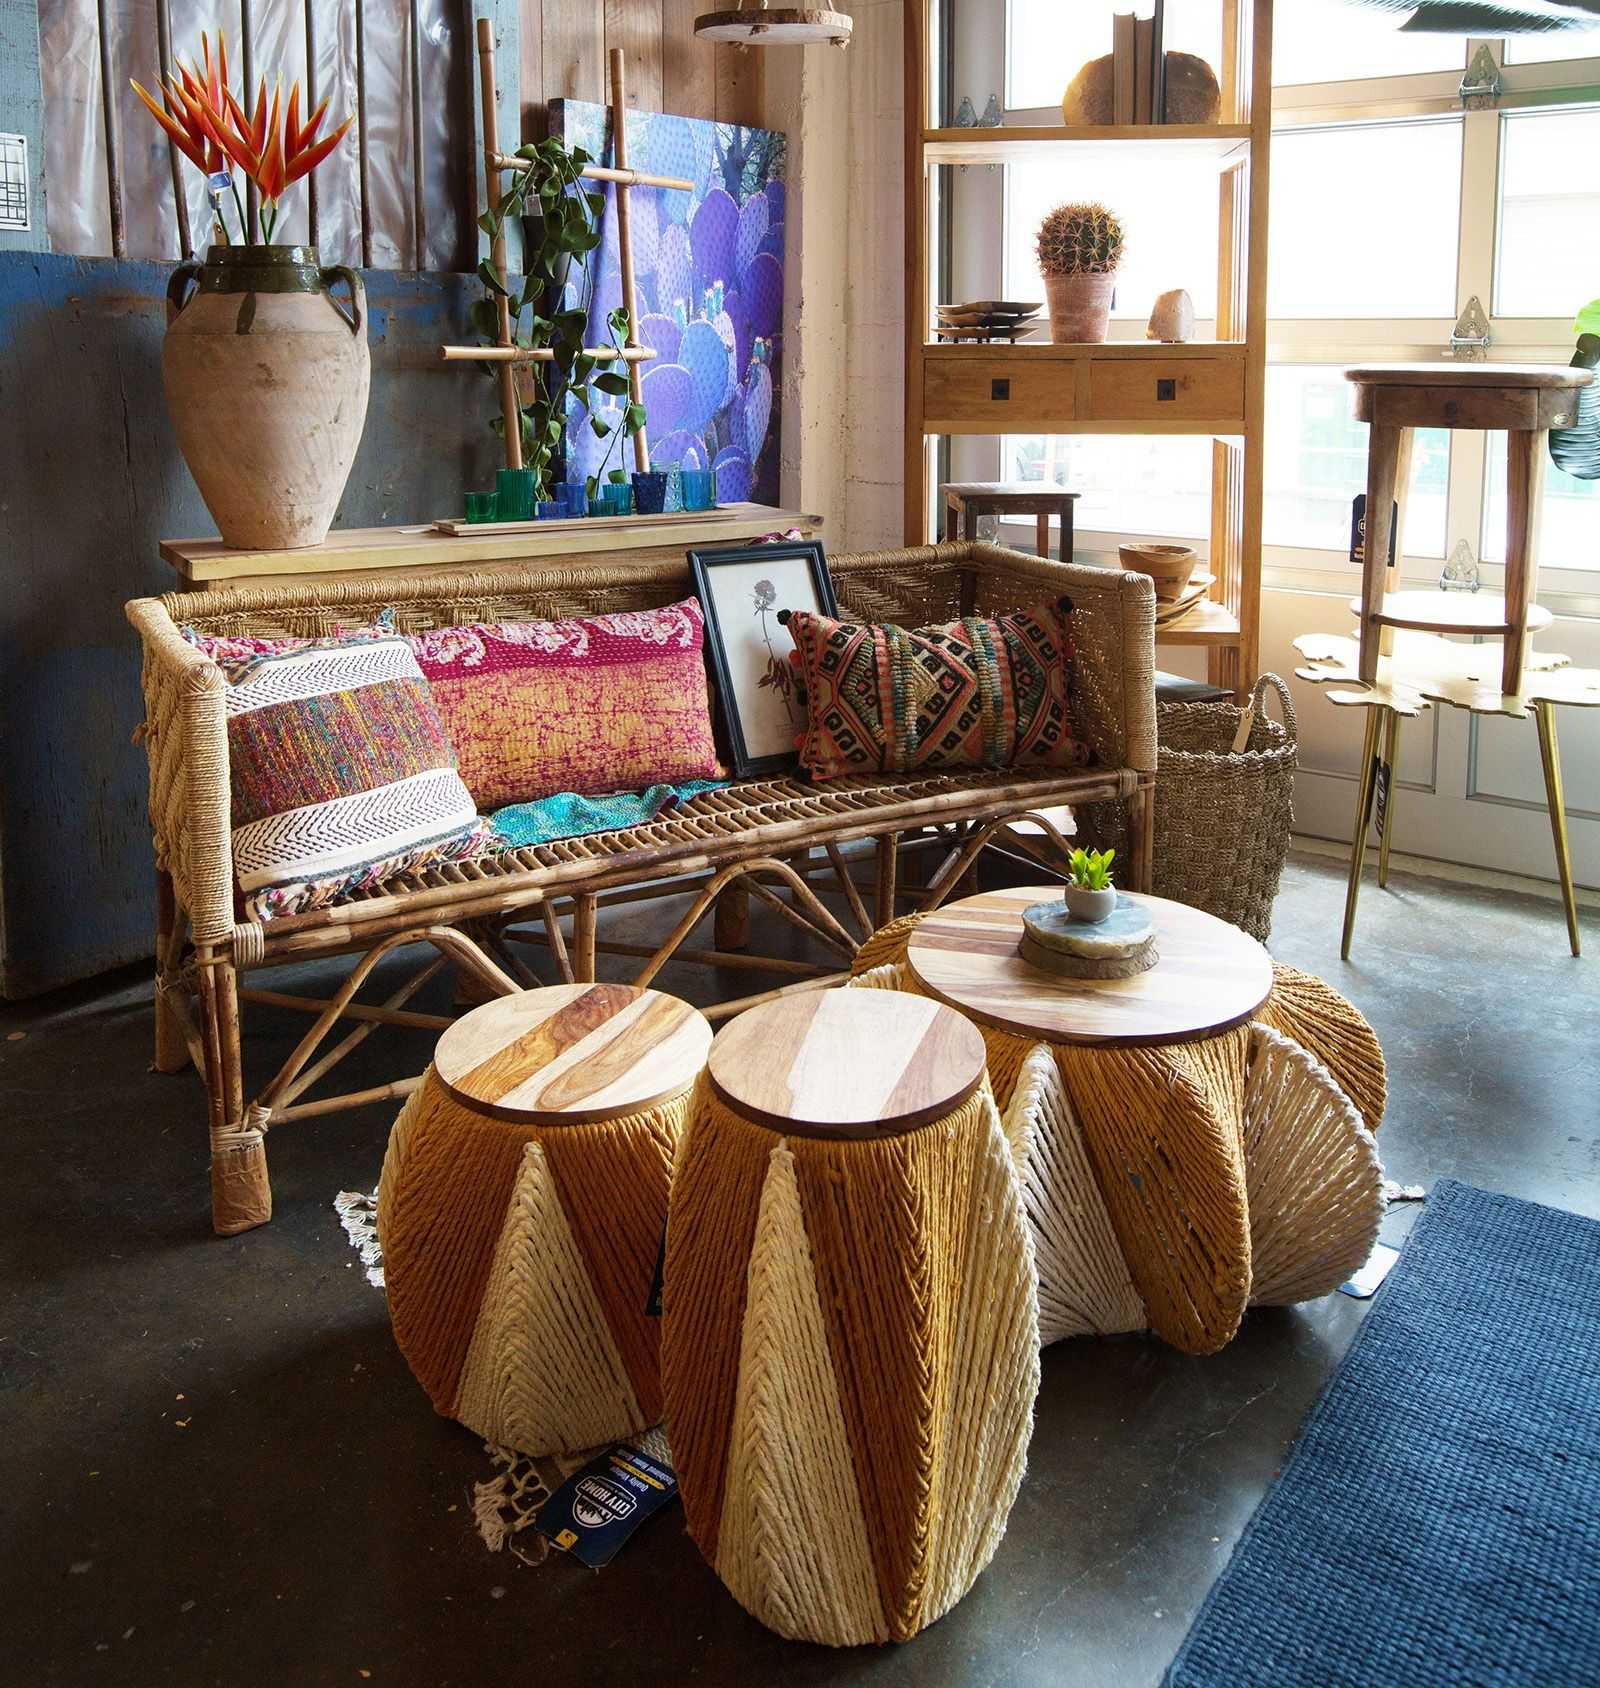 Rattan And Tropical Wood Furniture Home Decor At City In Portland Oregon